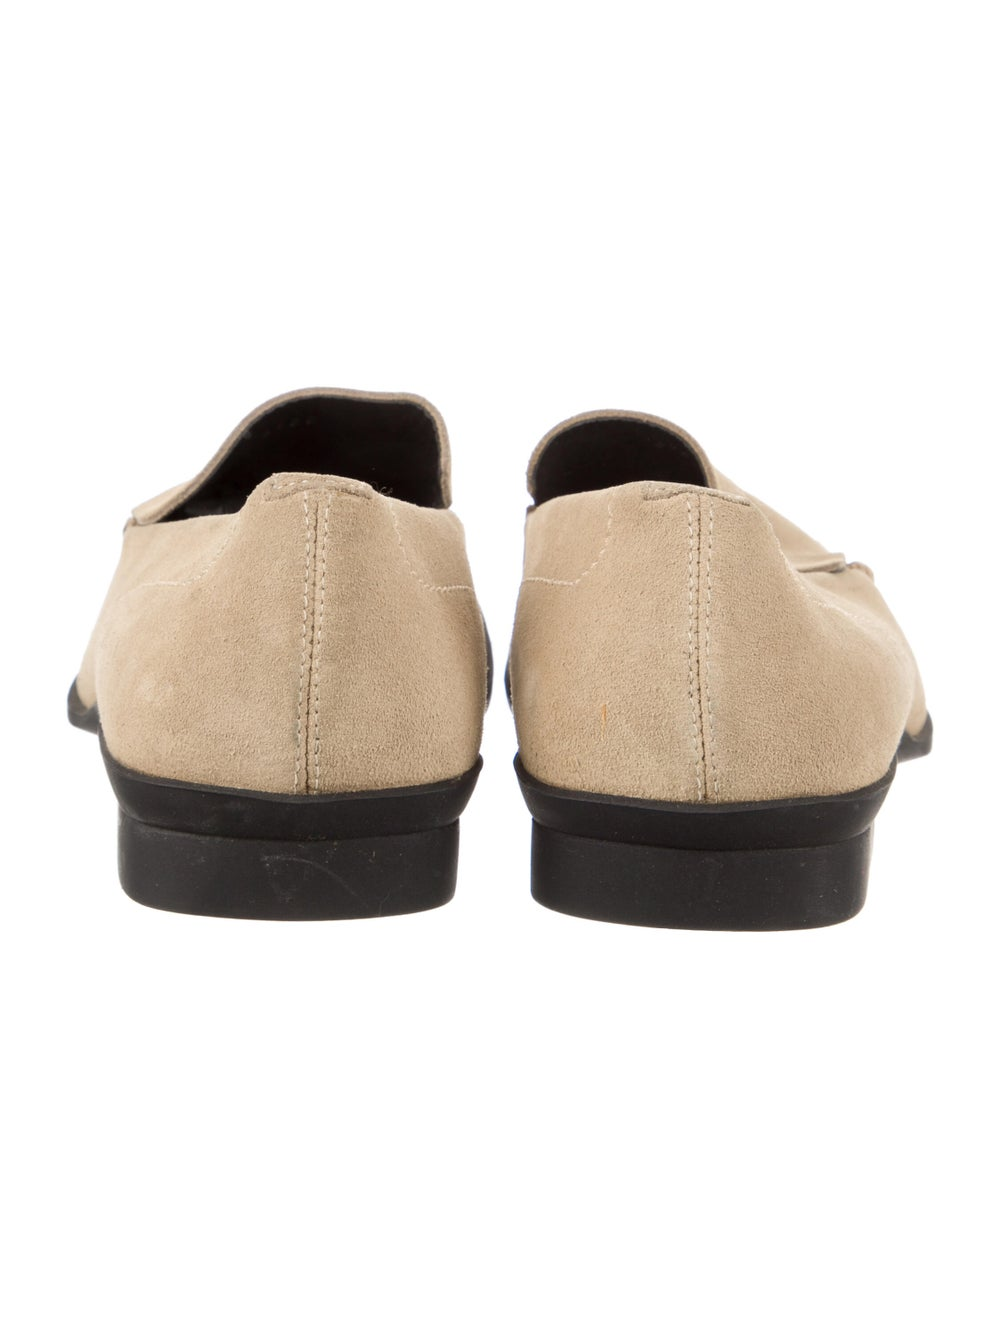 Gucci Suede Loafers - image 4